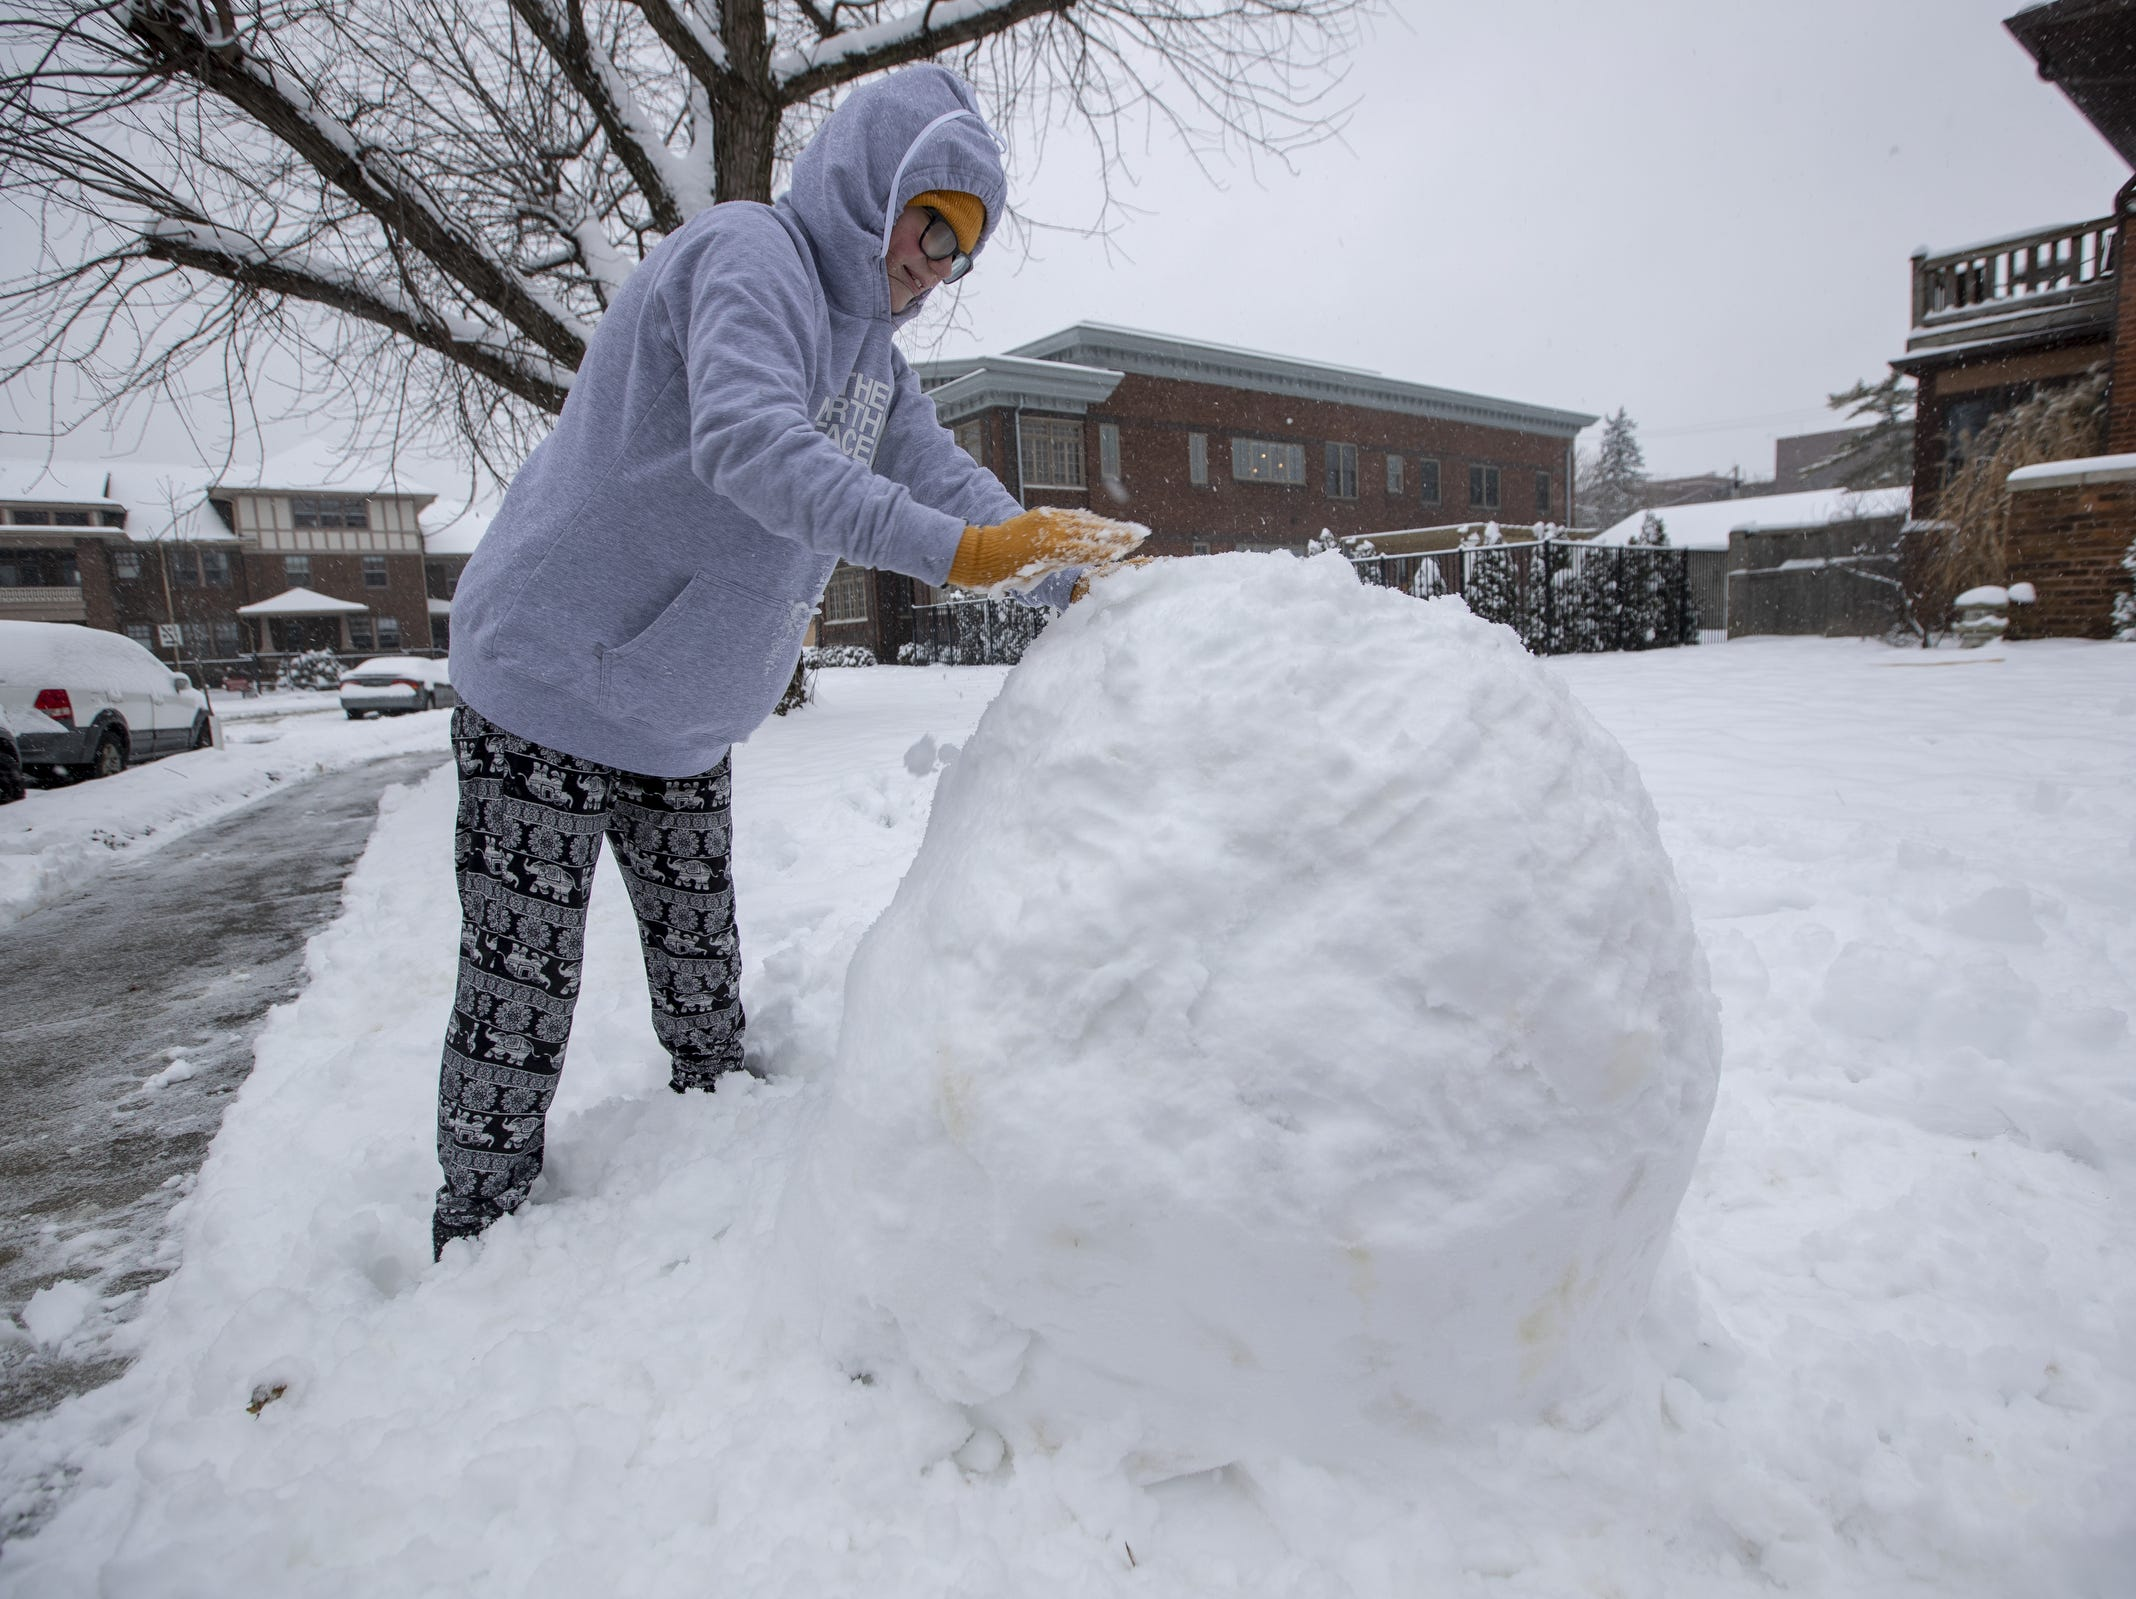 Madelin Senn, 12, works on making a snowman on a day where 5-7 inches of snow is expected to fall in Central Indiana, Indianapolis, Saturday, Jan. 12, 2019.